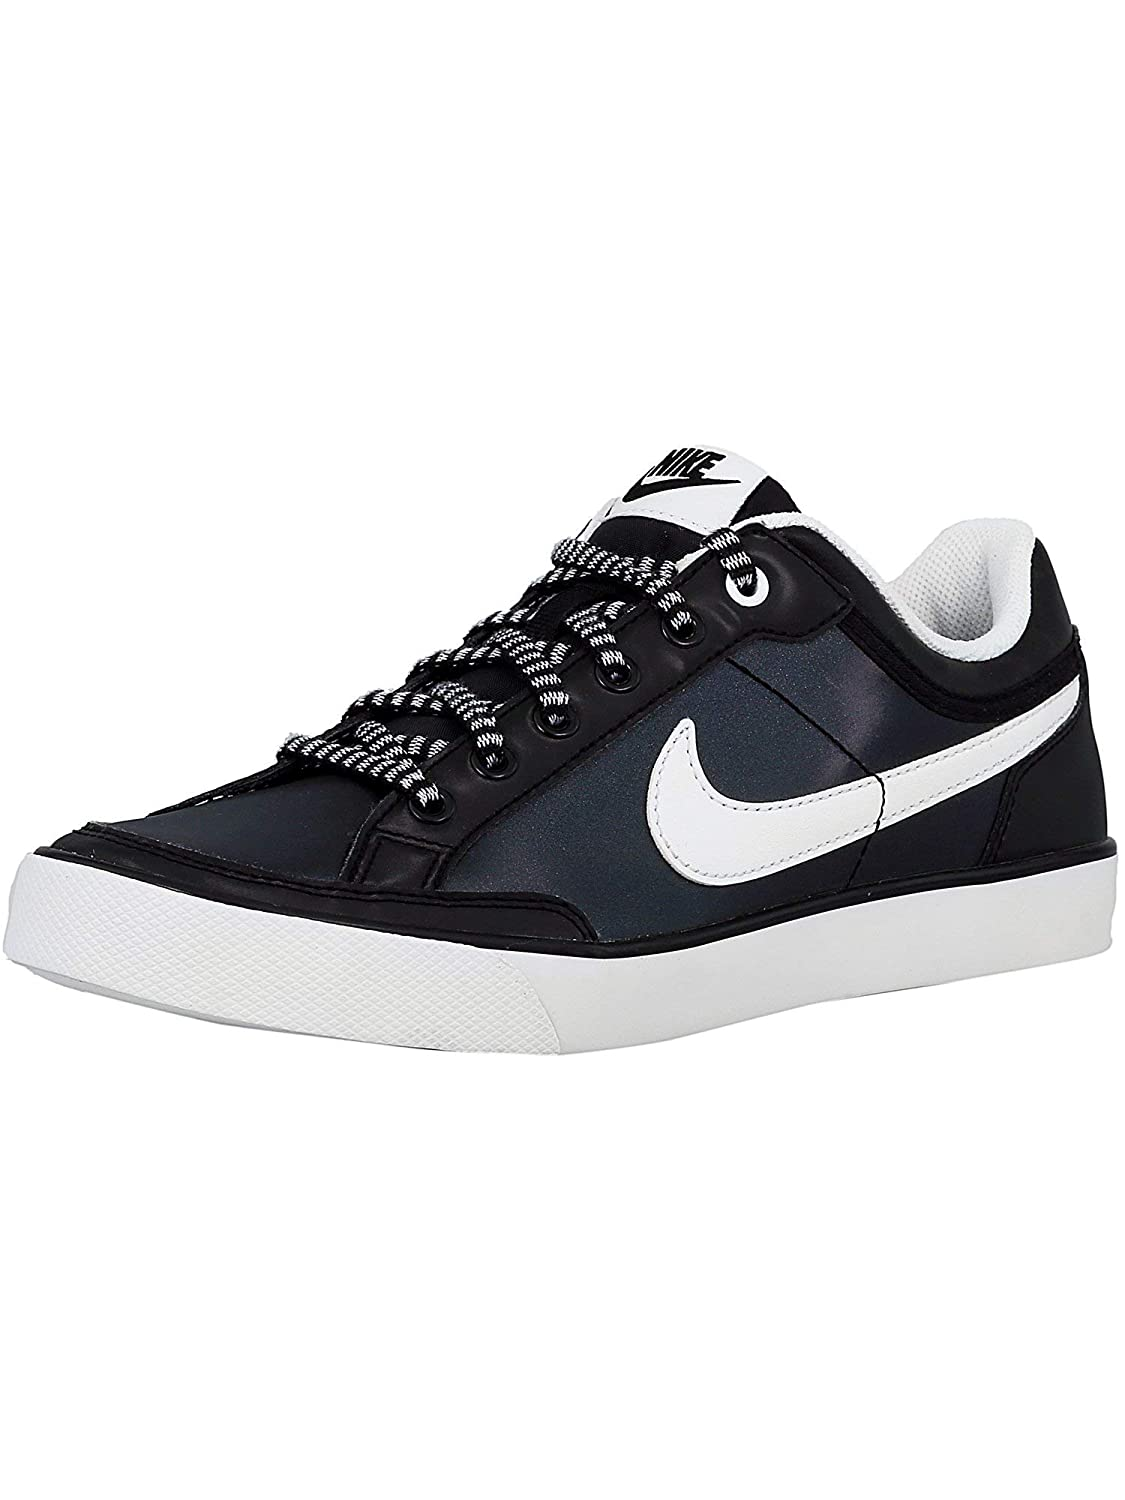 Perth Padre fage invadir  Buy Nike Capri Iii Low 009 Ankle-High Fashion Sneaker - 6M at Amazon.in